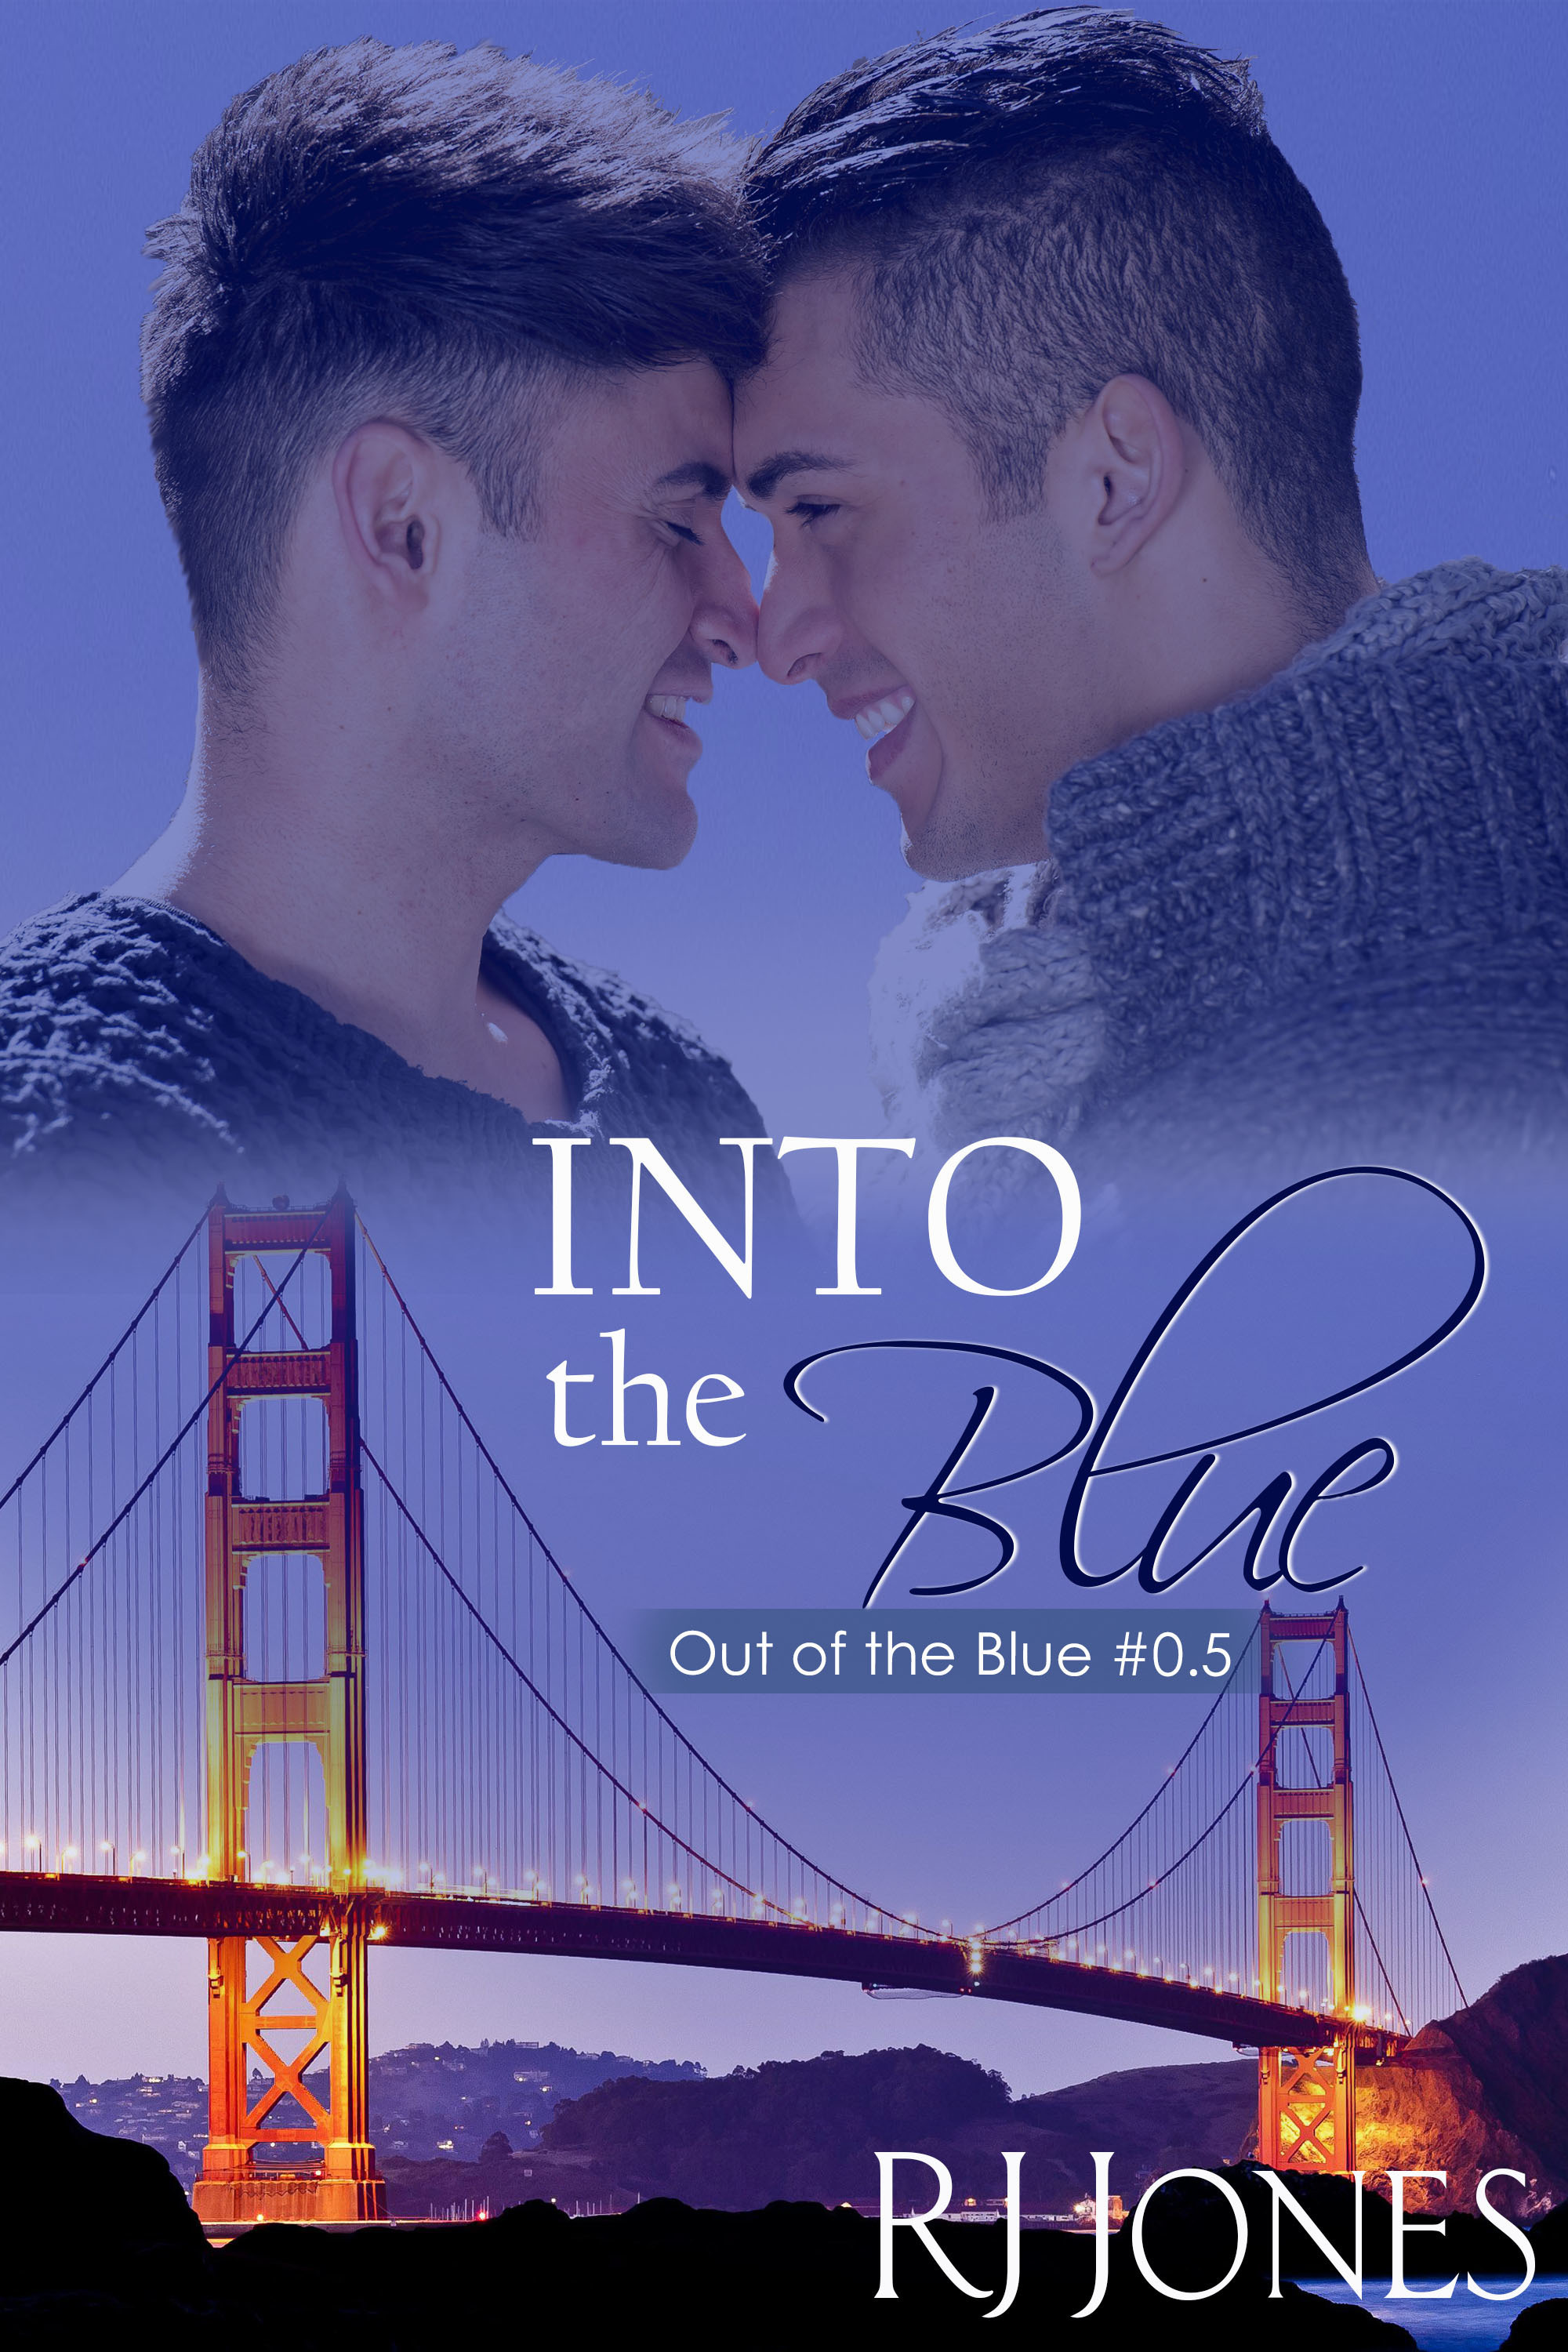 Into the Blue (Out of the Blue #0.5) R.J. Jones